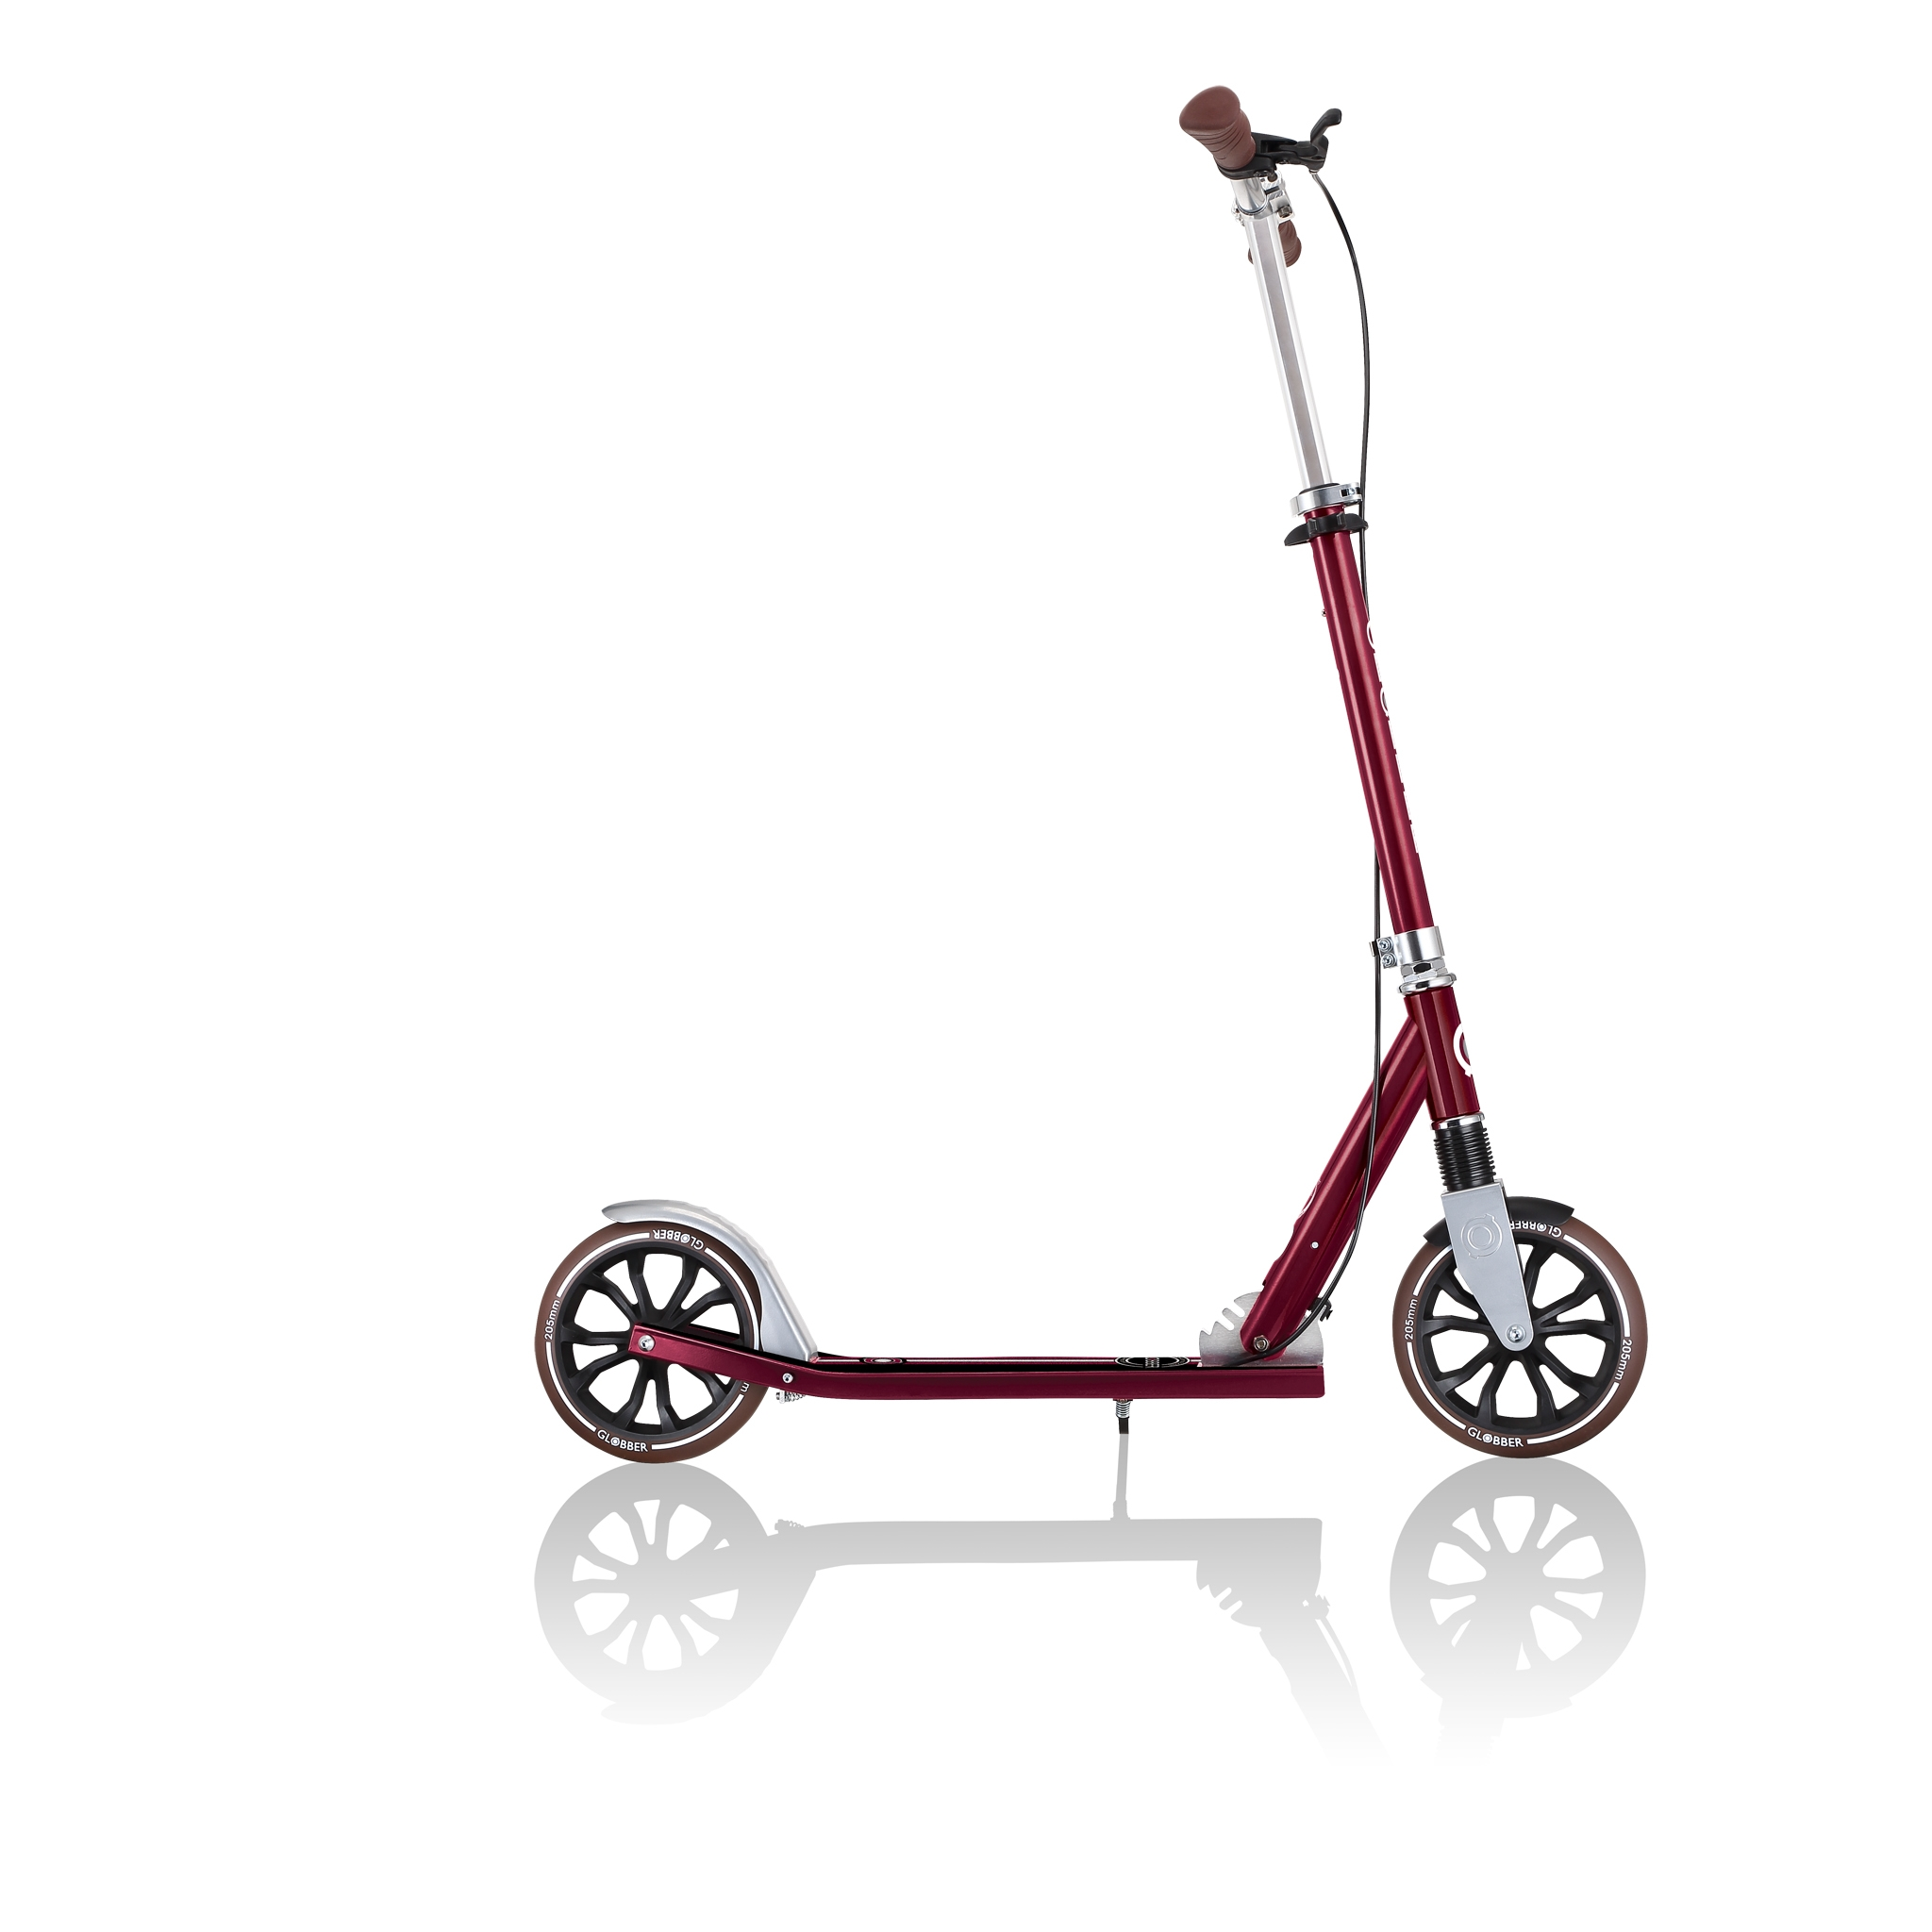 Globber-NL-205-DELUXE-collapsible-2-wheel-scooter-for-kids-with-big-wheels-205mm 5